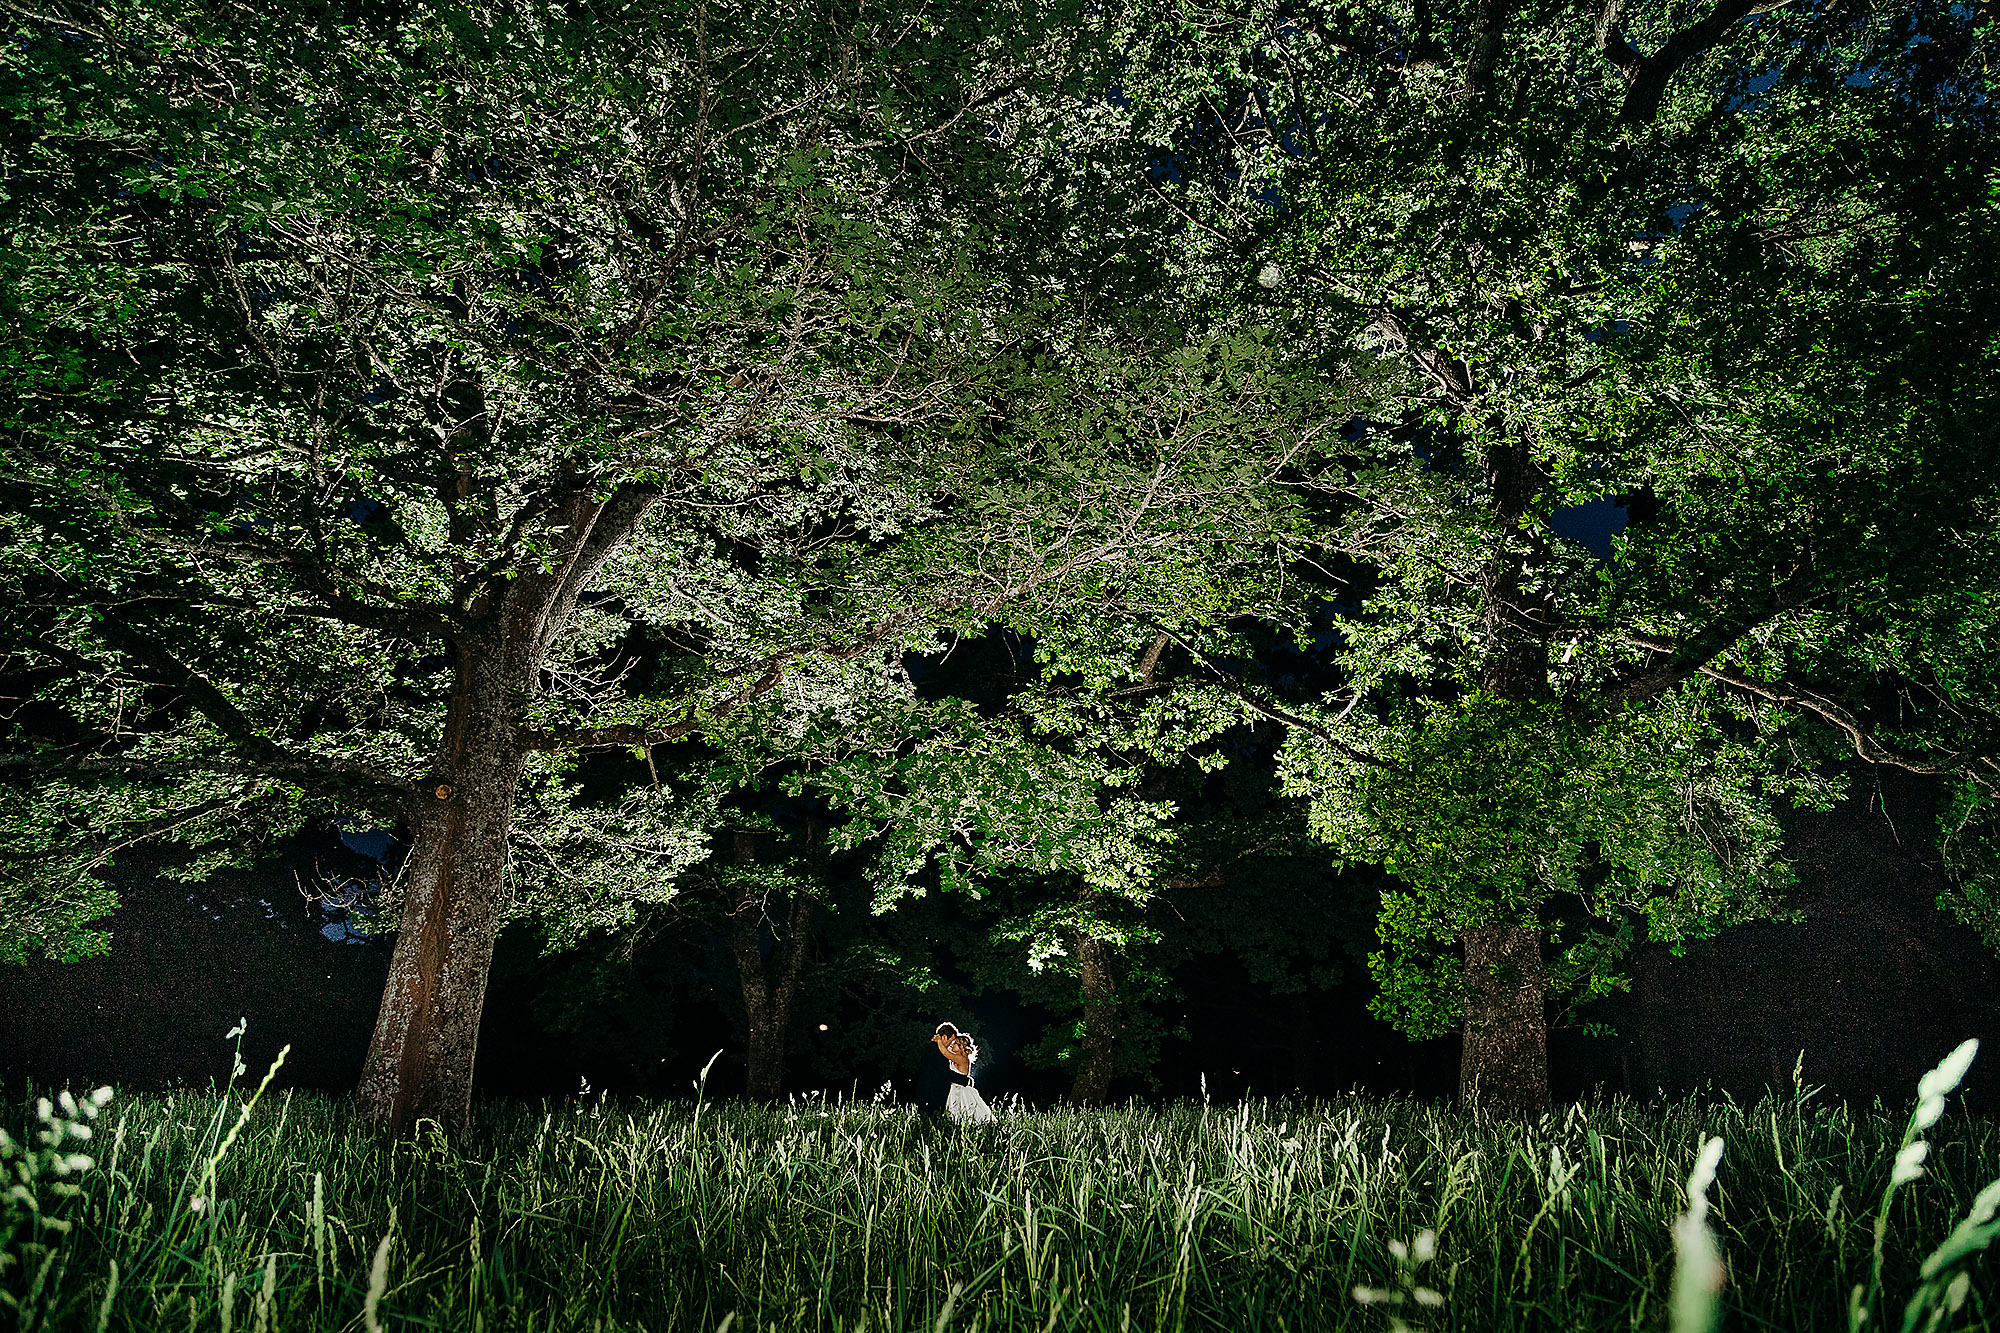 creative light night photo at wedding with bride and groom in trees at bangor farm christchurch wedding photographer